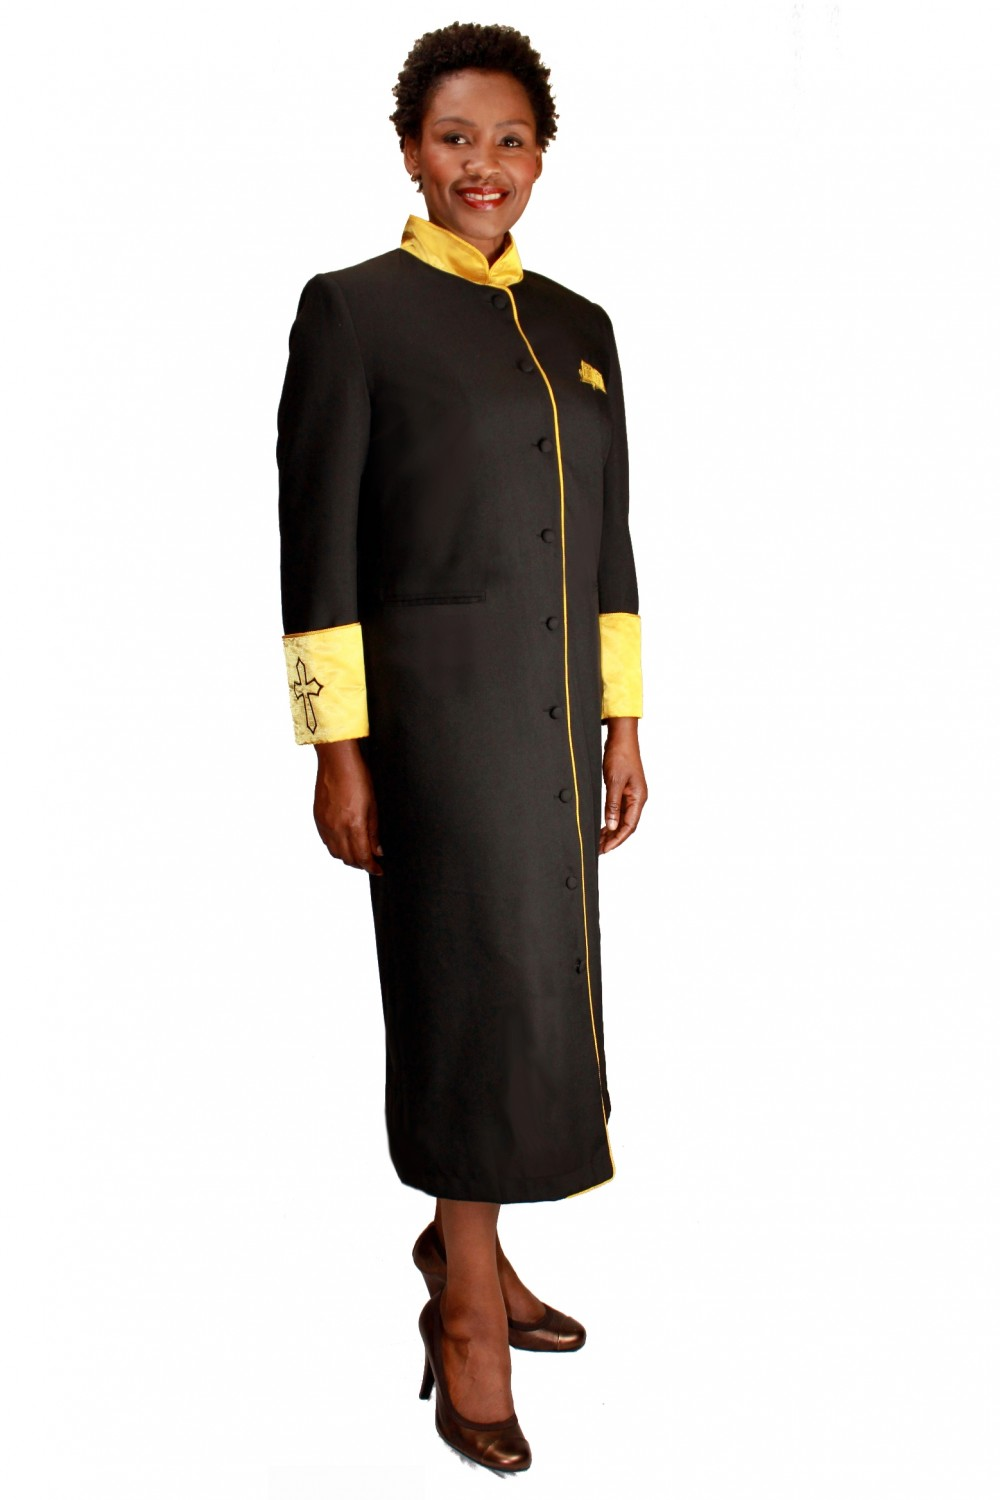 RR9001 | Women's Cassock Robe | Divine Apparal, Inc